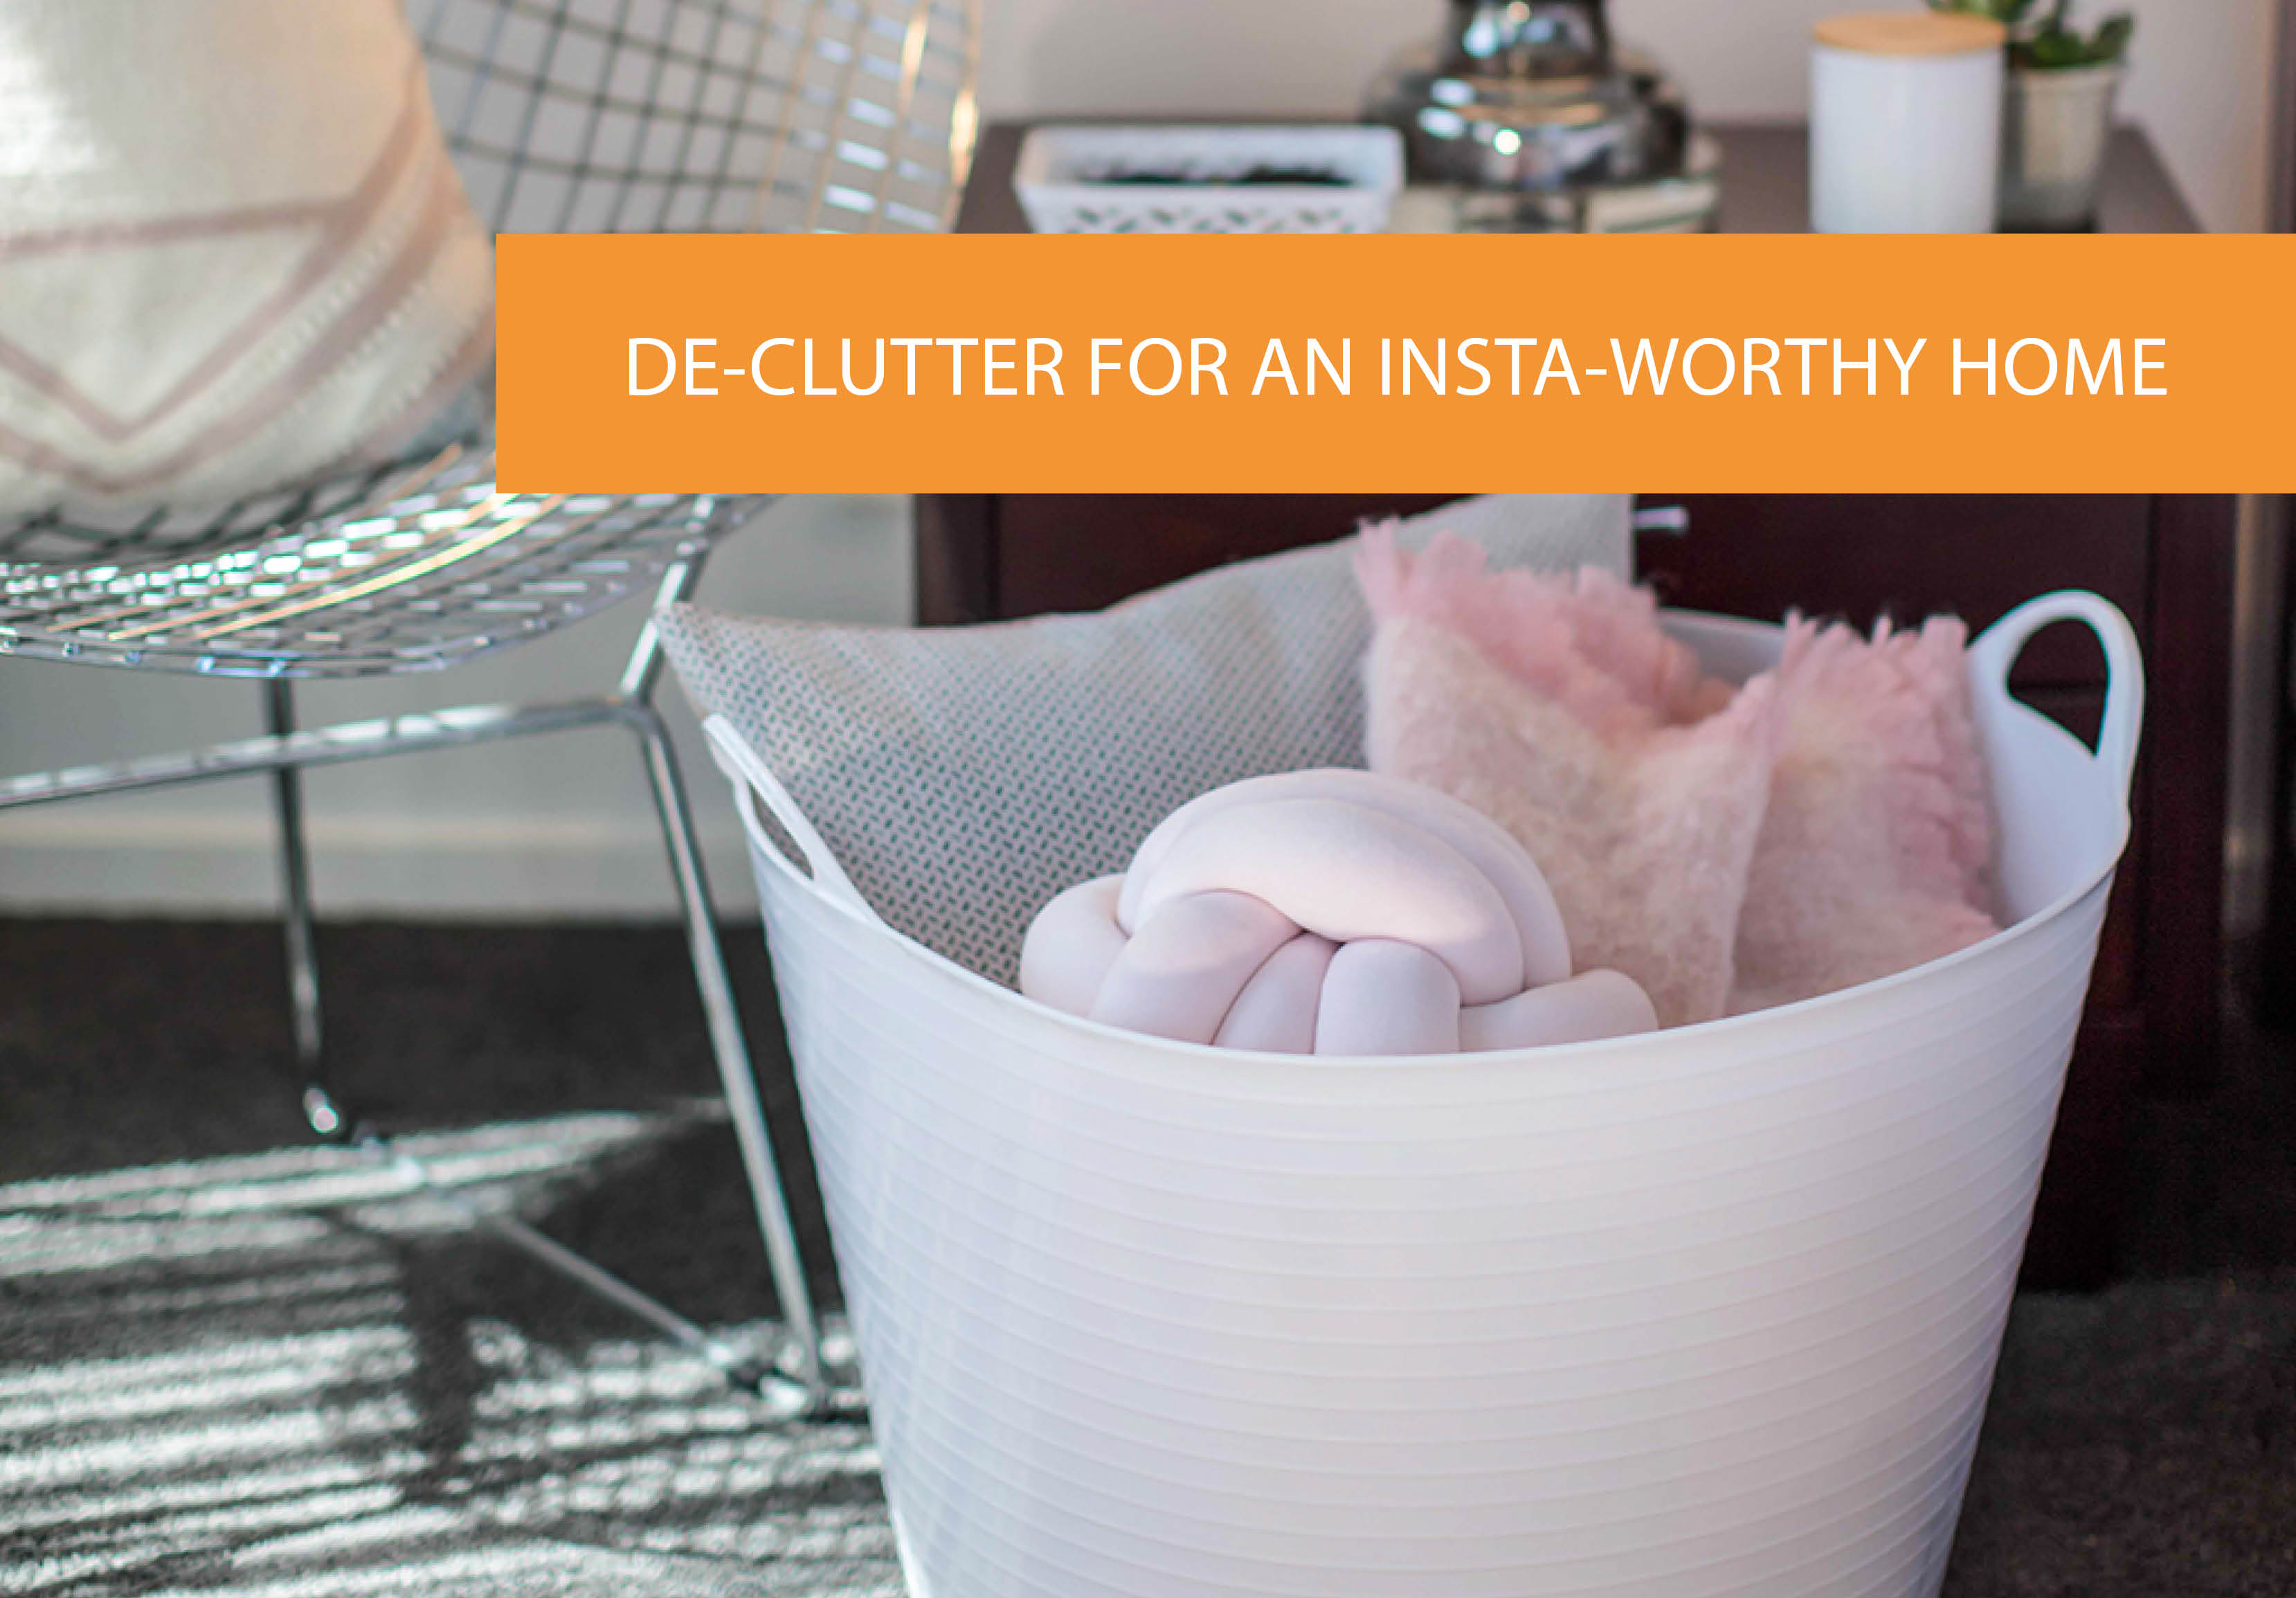 Create A De-cluttered Insta-Worthy House In Minutes With Just A Few Simple Tips